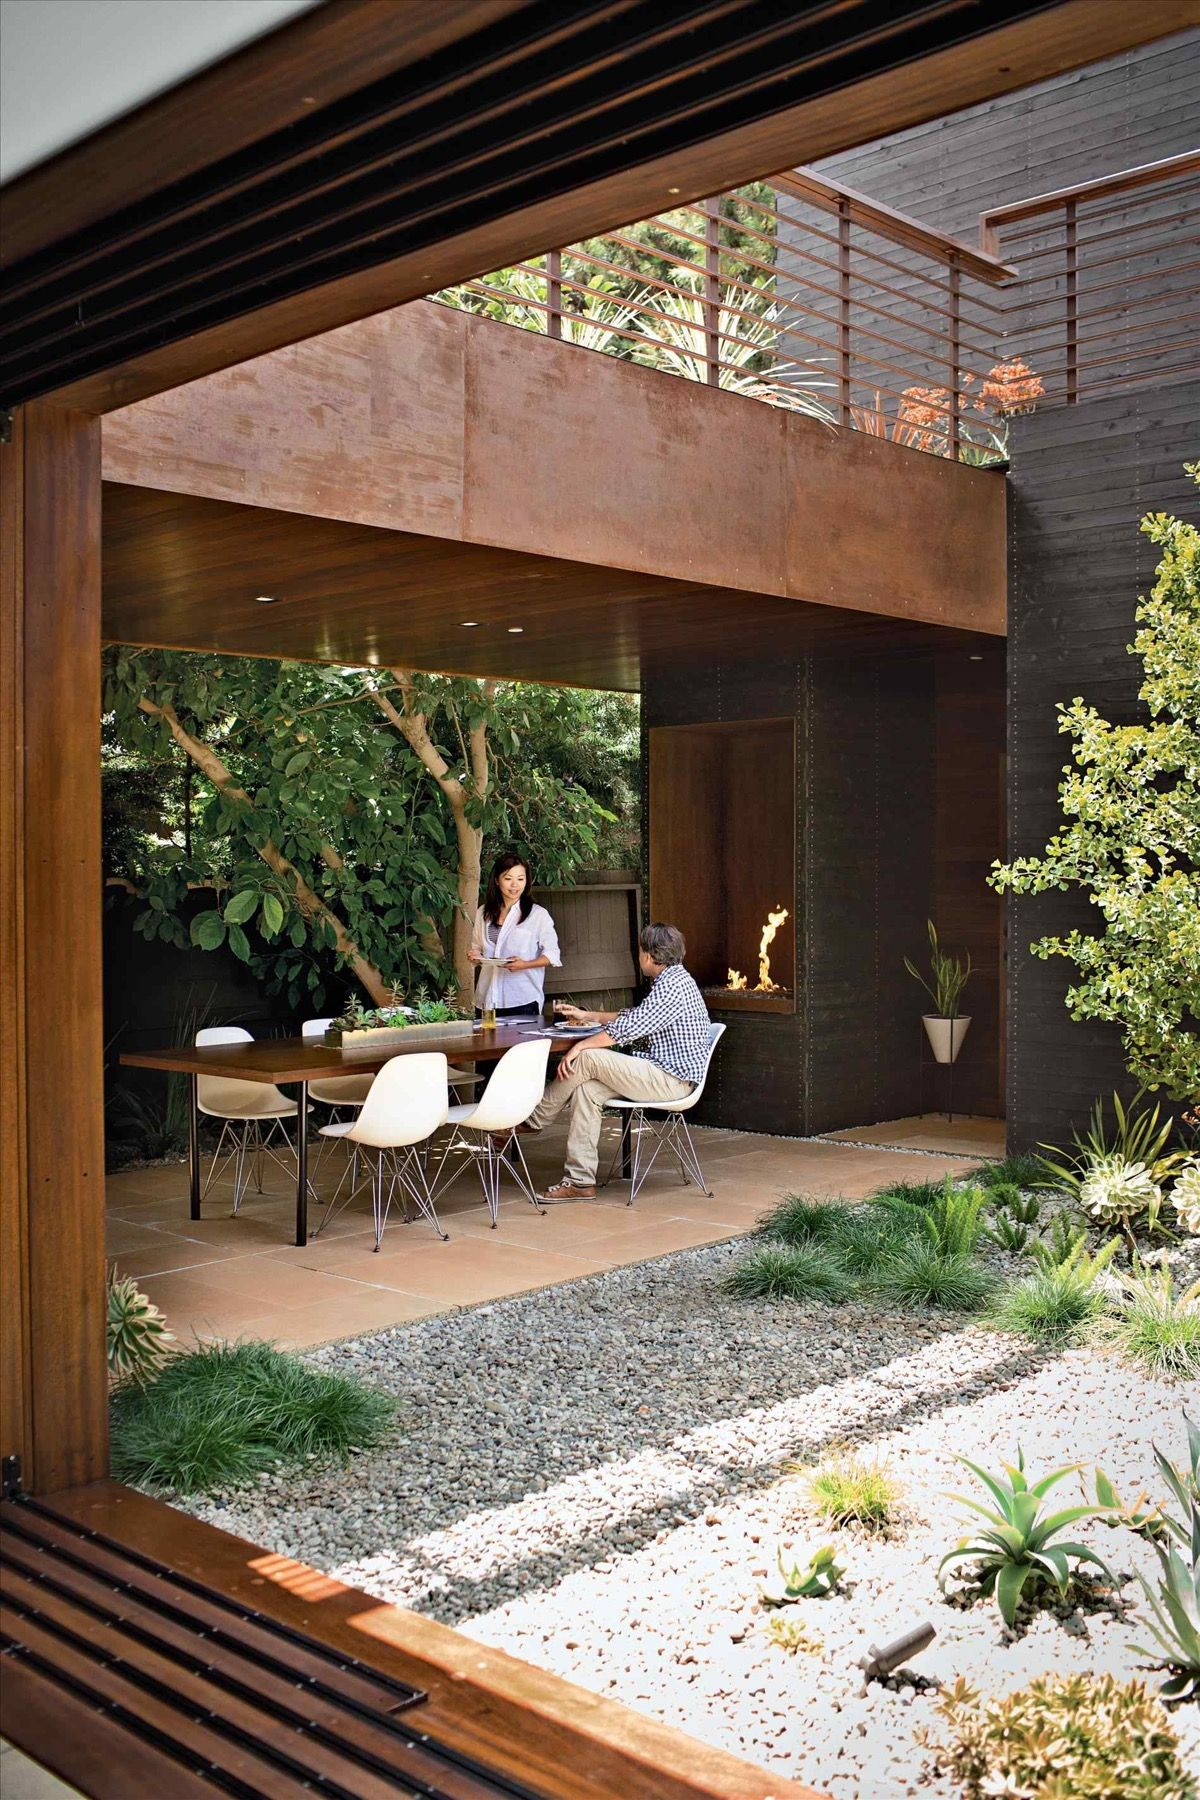 51 captivating courtyard designs that make us go wow on wow awesome backyard patio designs ideas for copy id=87841